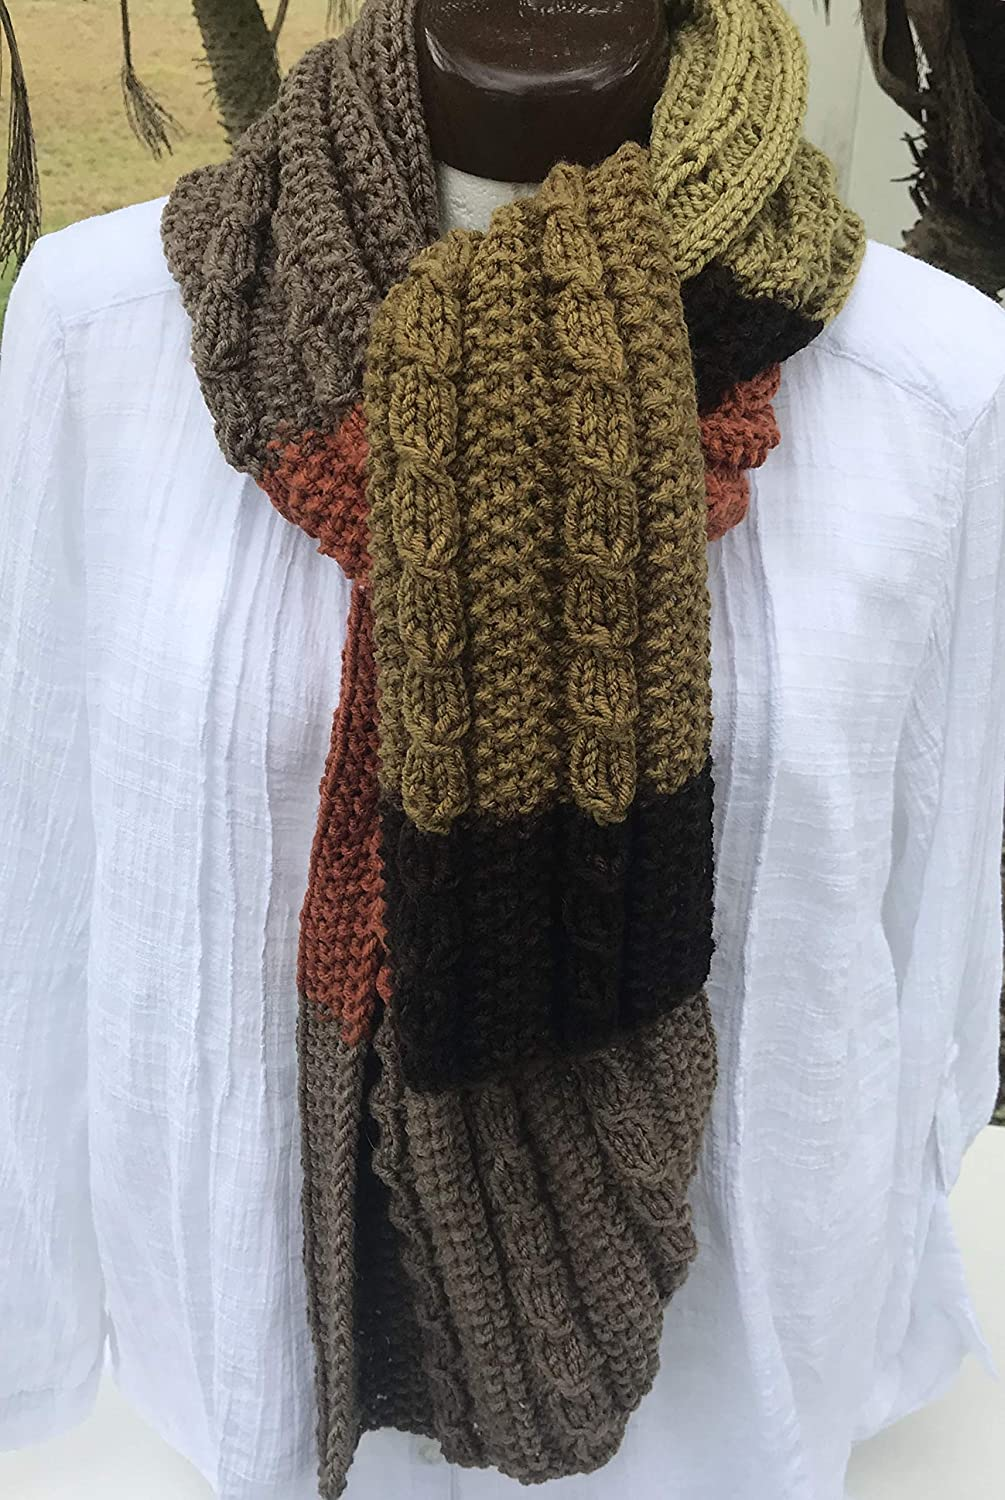 Amazon Com Woman S Hand Knit Scarf With Striped Fall Colors Handmade